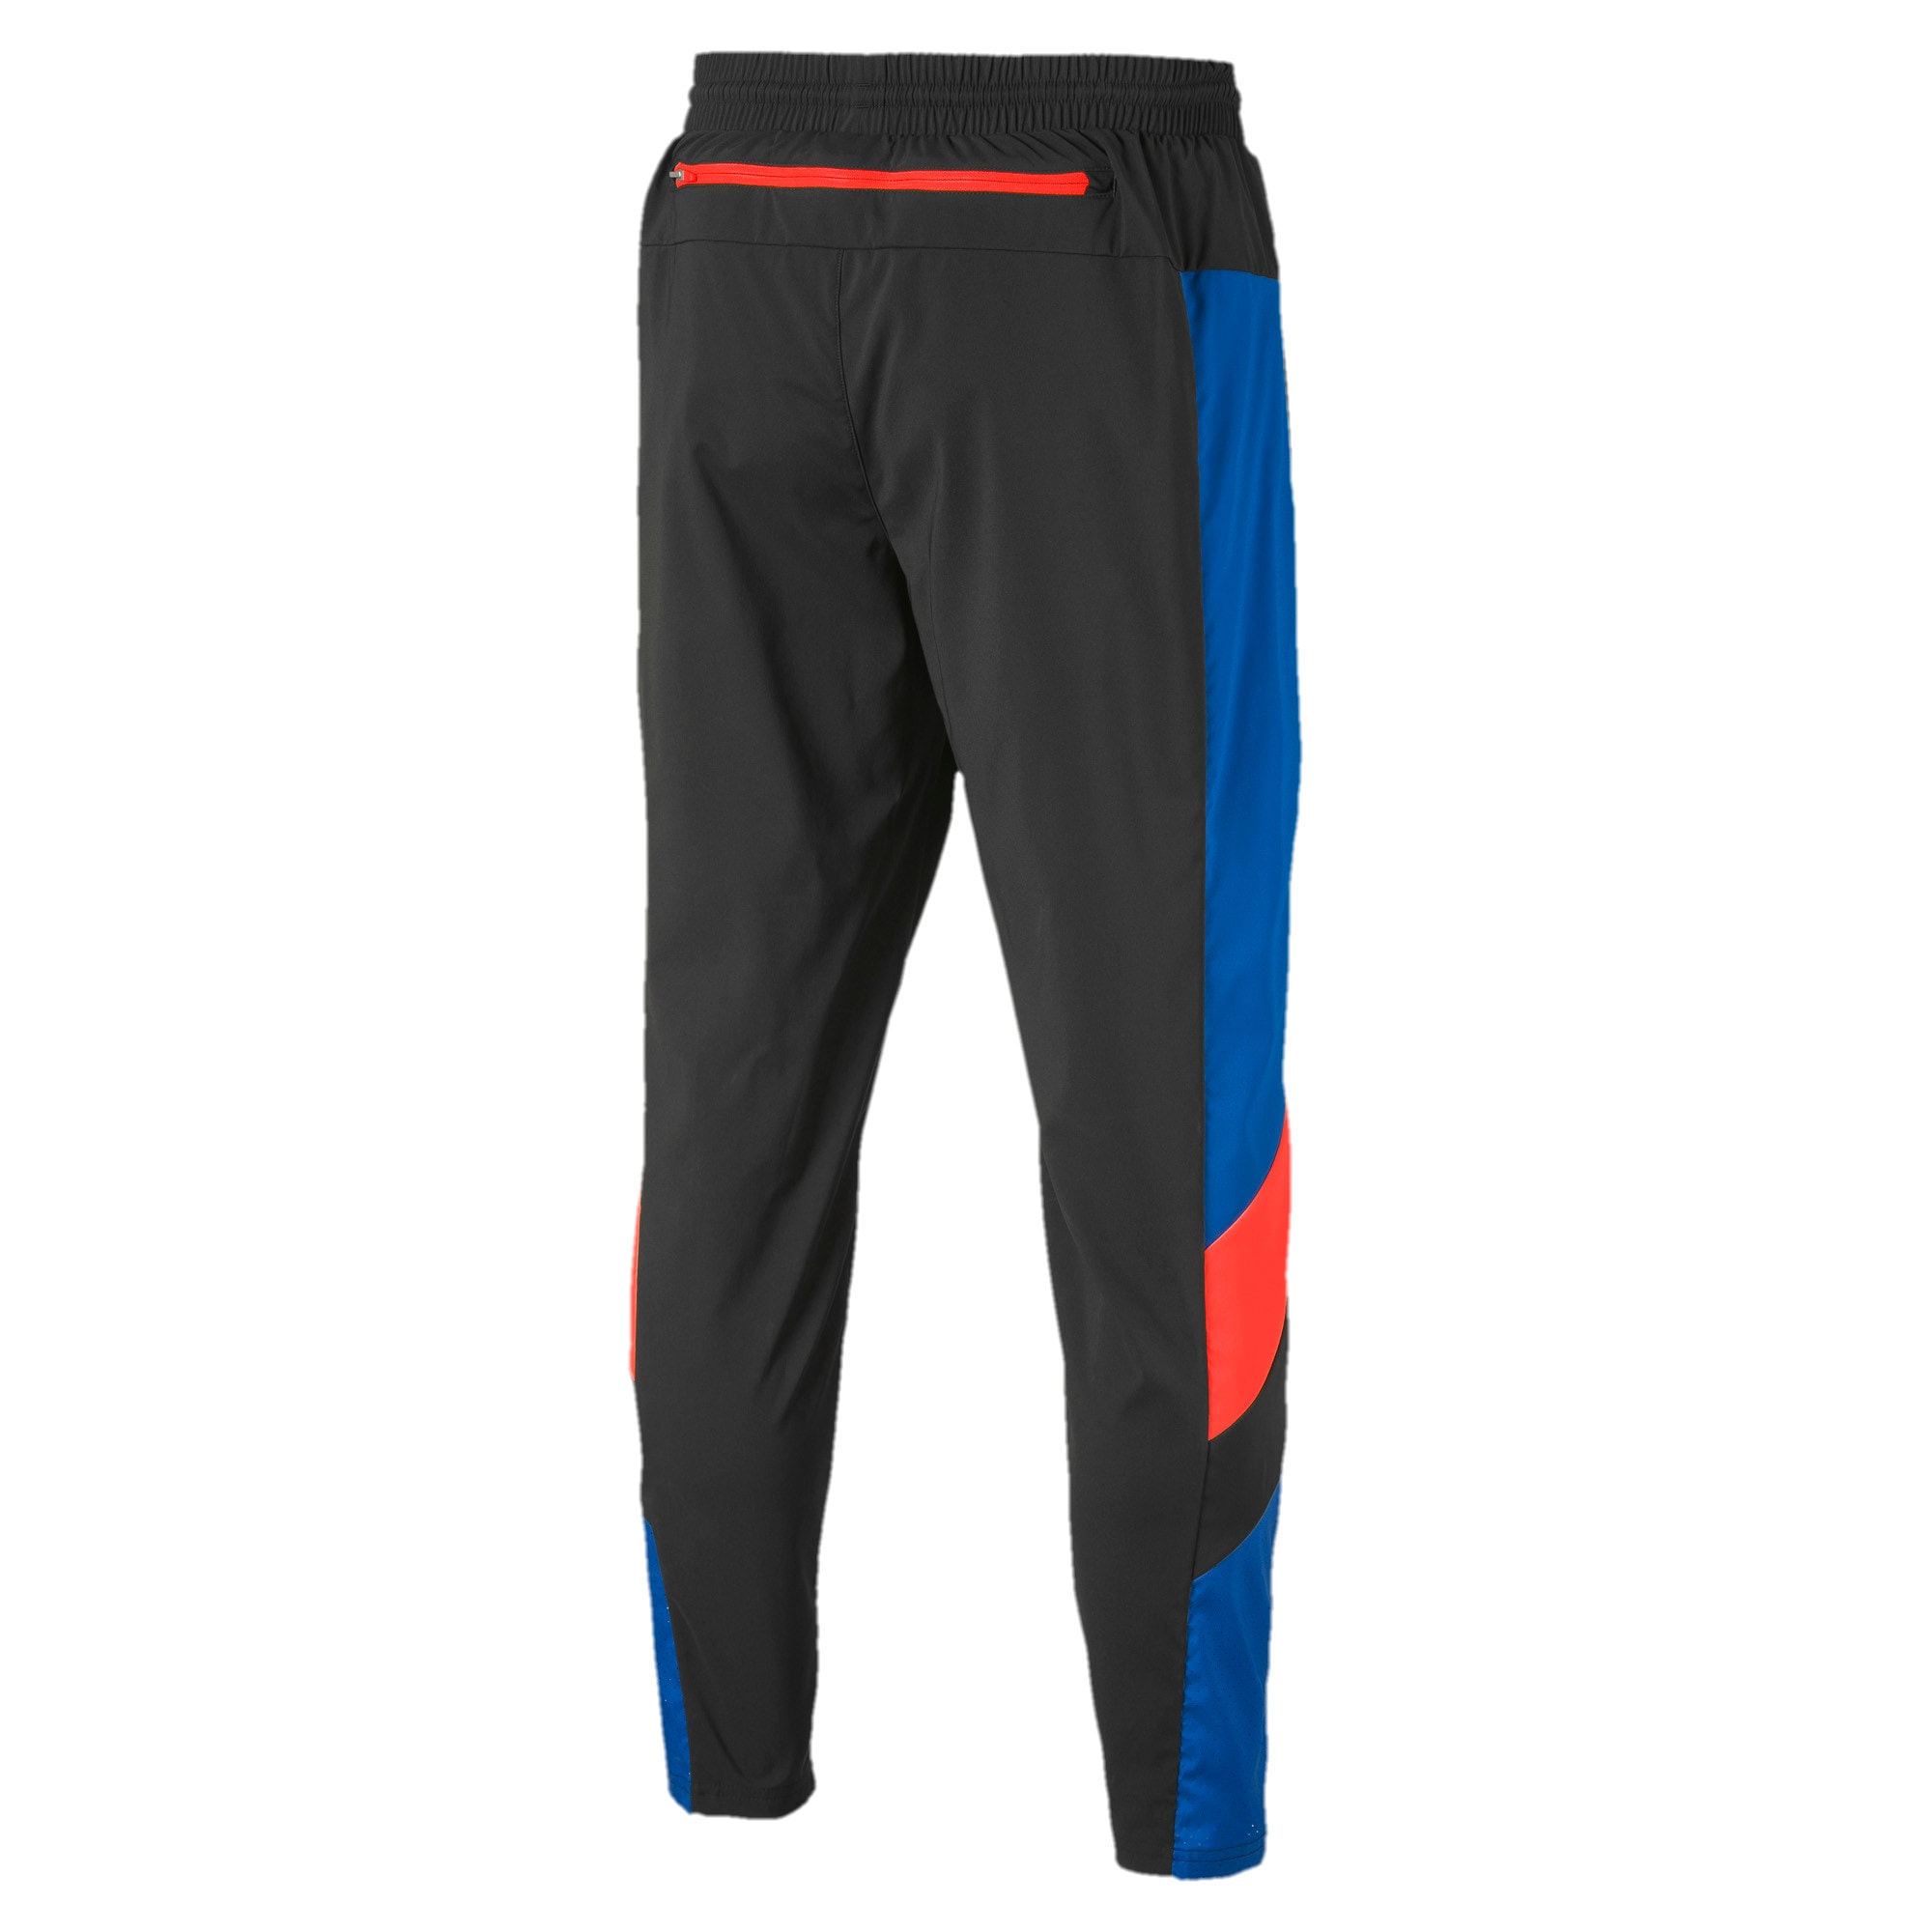 Reactive Packable Men's Training Pants, Black-Galaxy-Nrgy Red, large